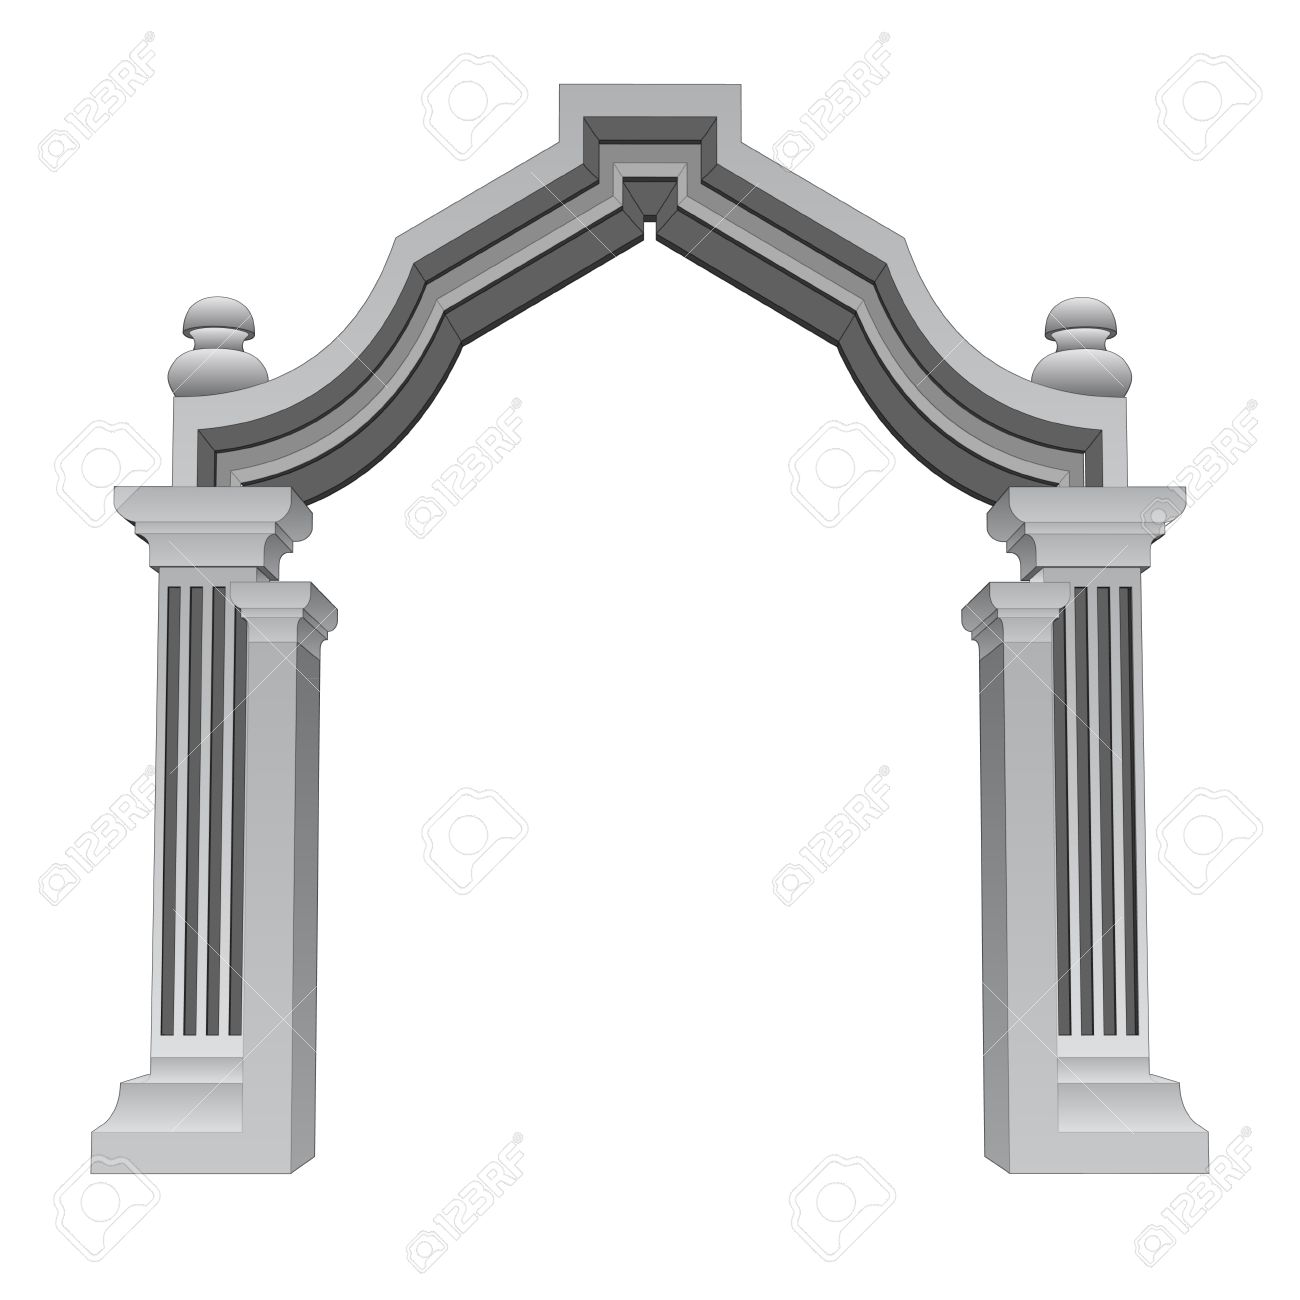 Marble Stone Baroque Entrance Gate Frame Vector Illustration.